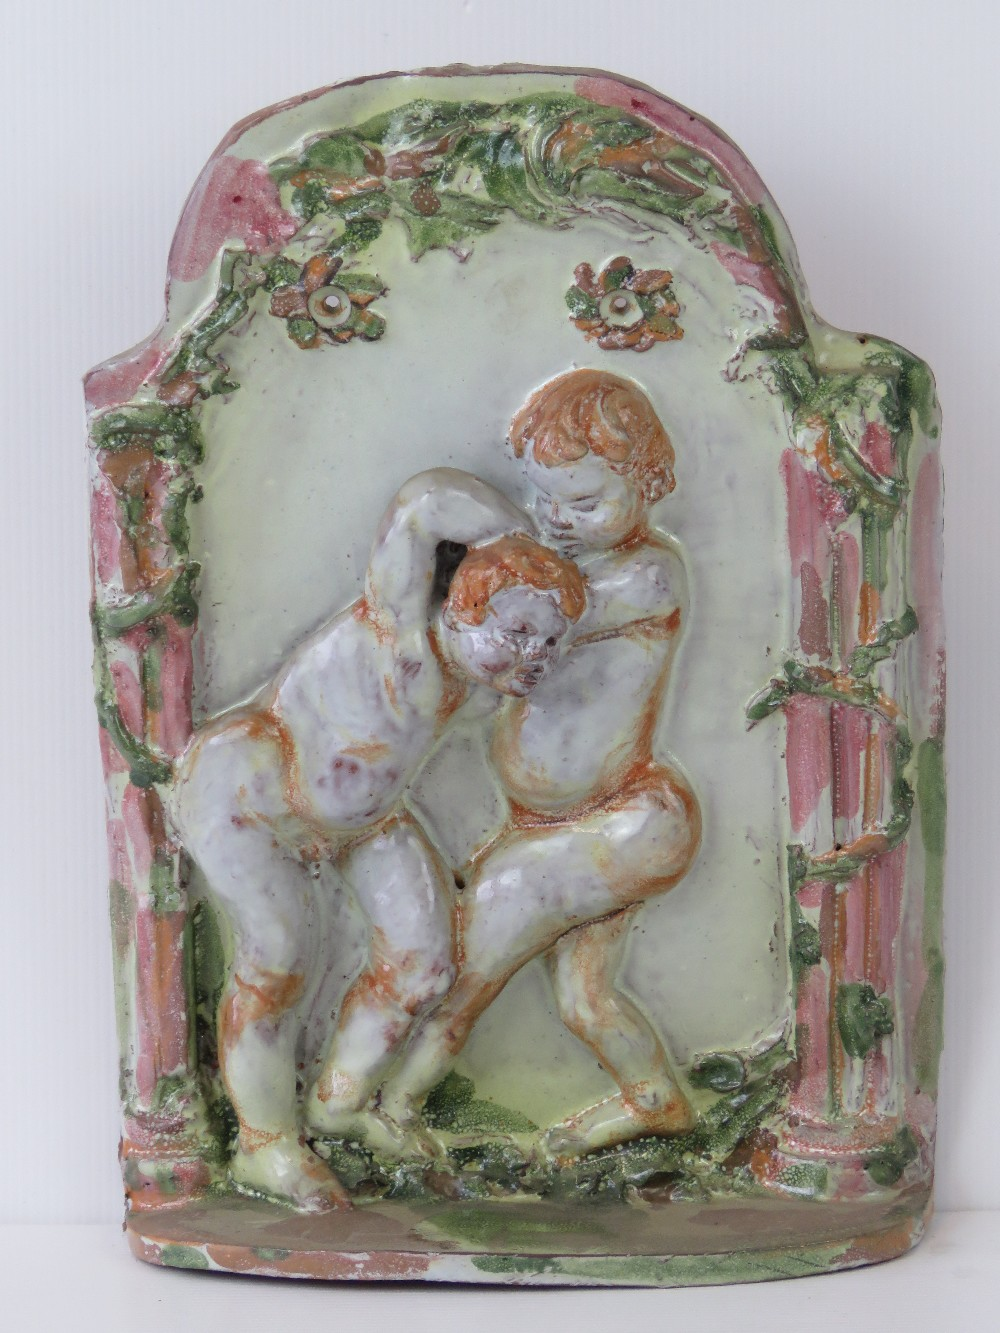 A ceramic wall plaque featuring boys fig